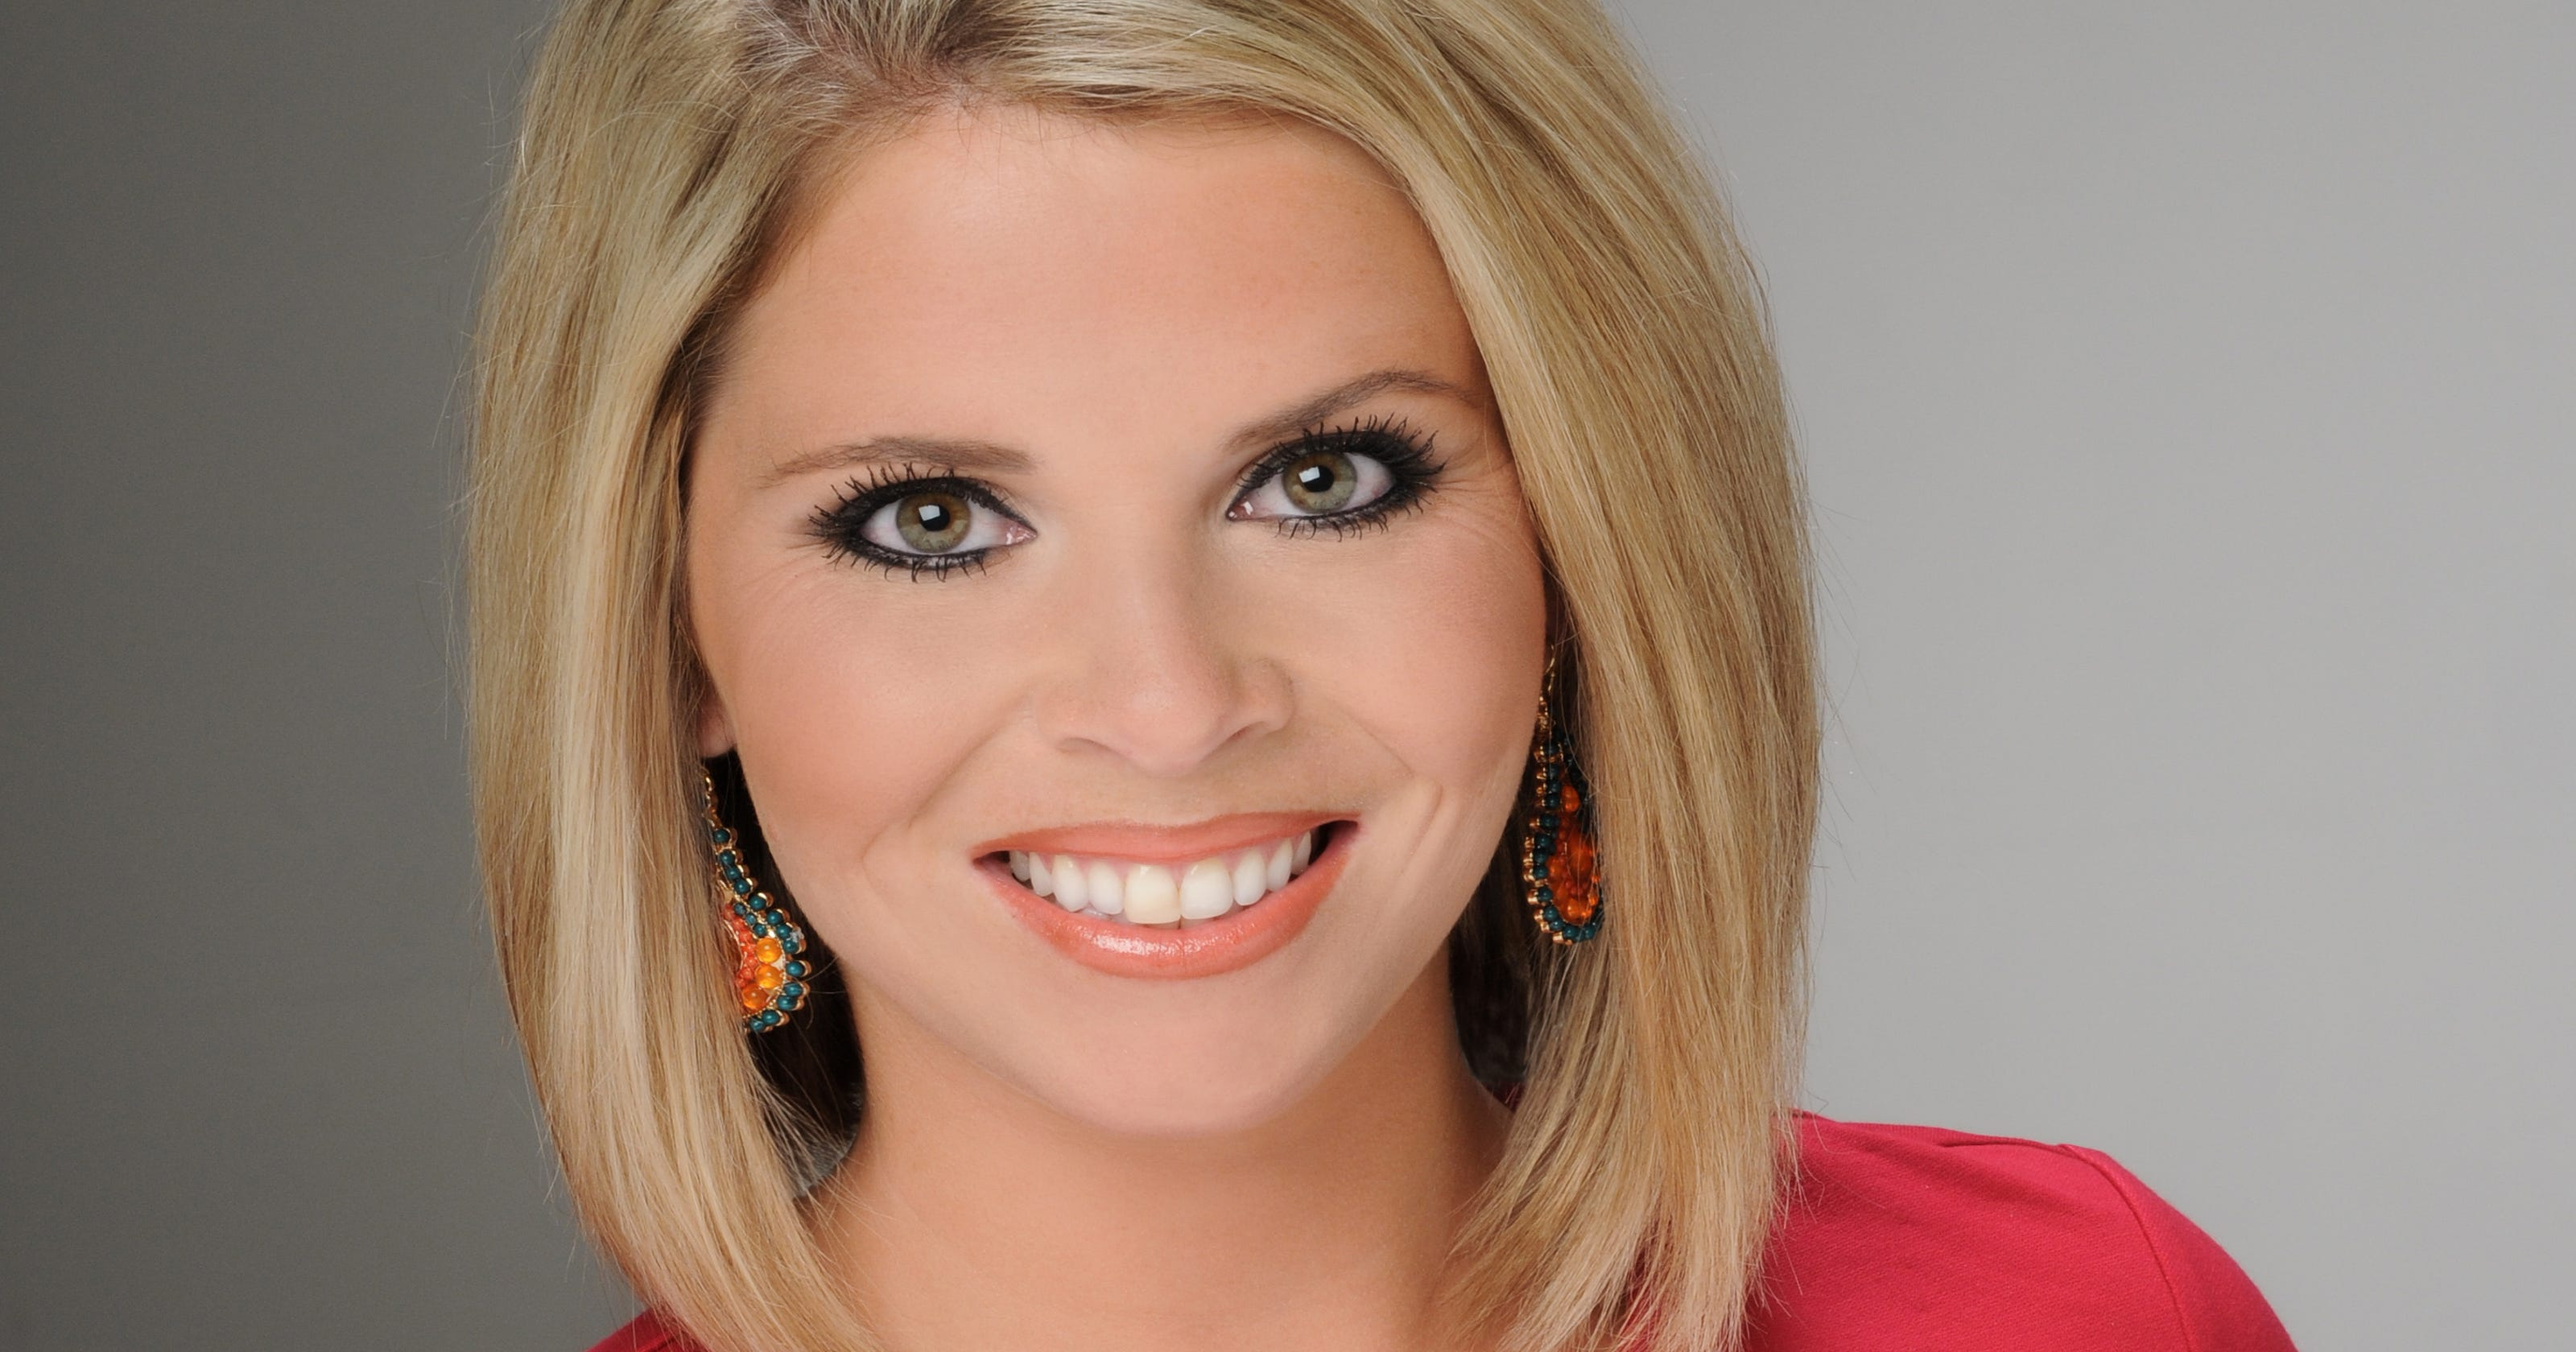 Channel 12's Emma Jade stepping away from 'Today in AZ